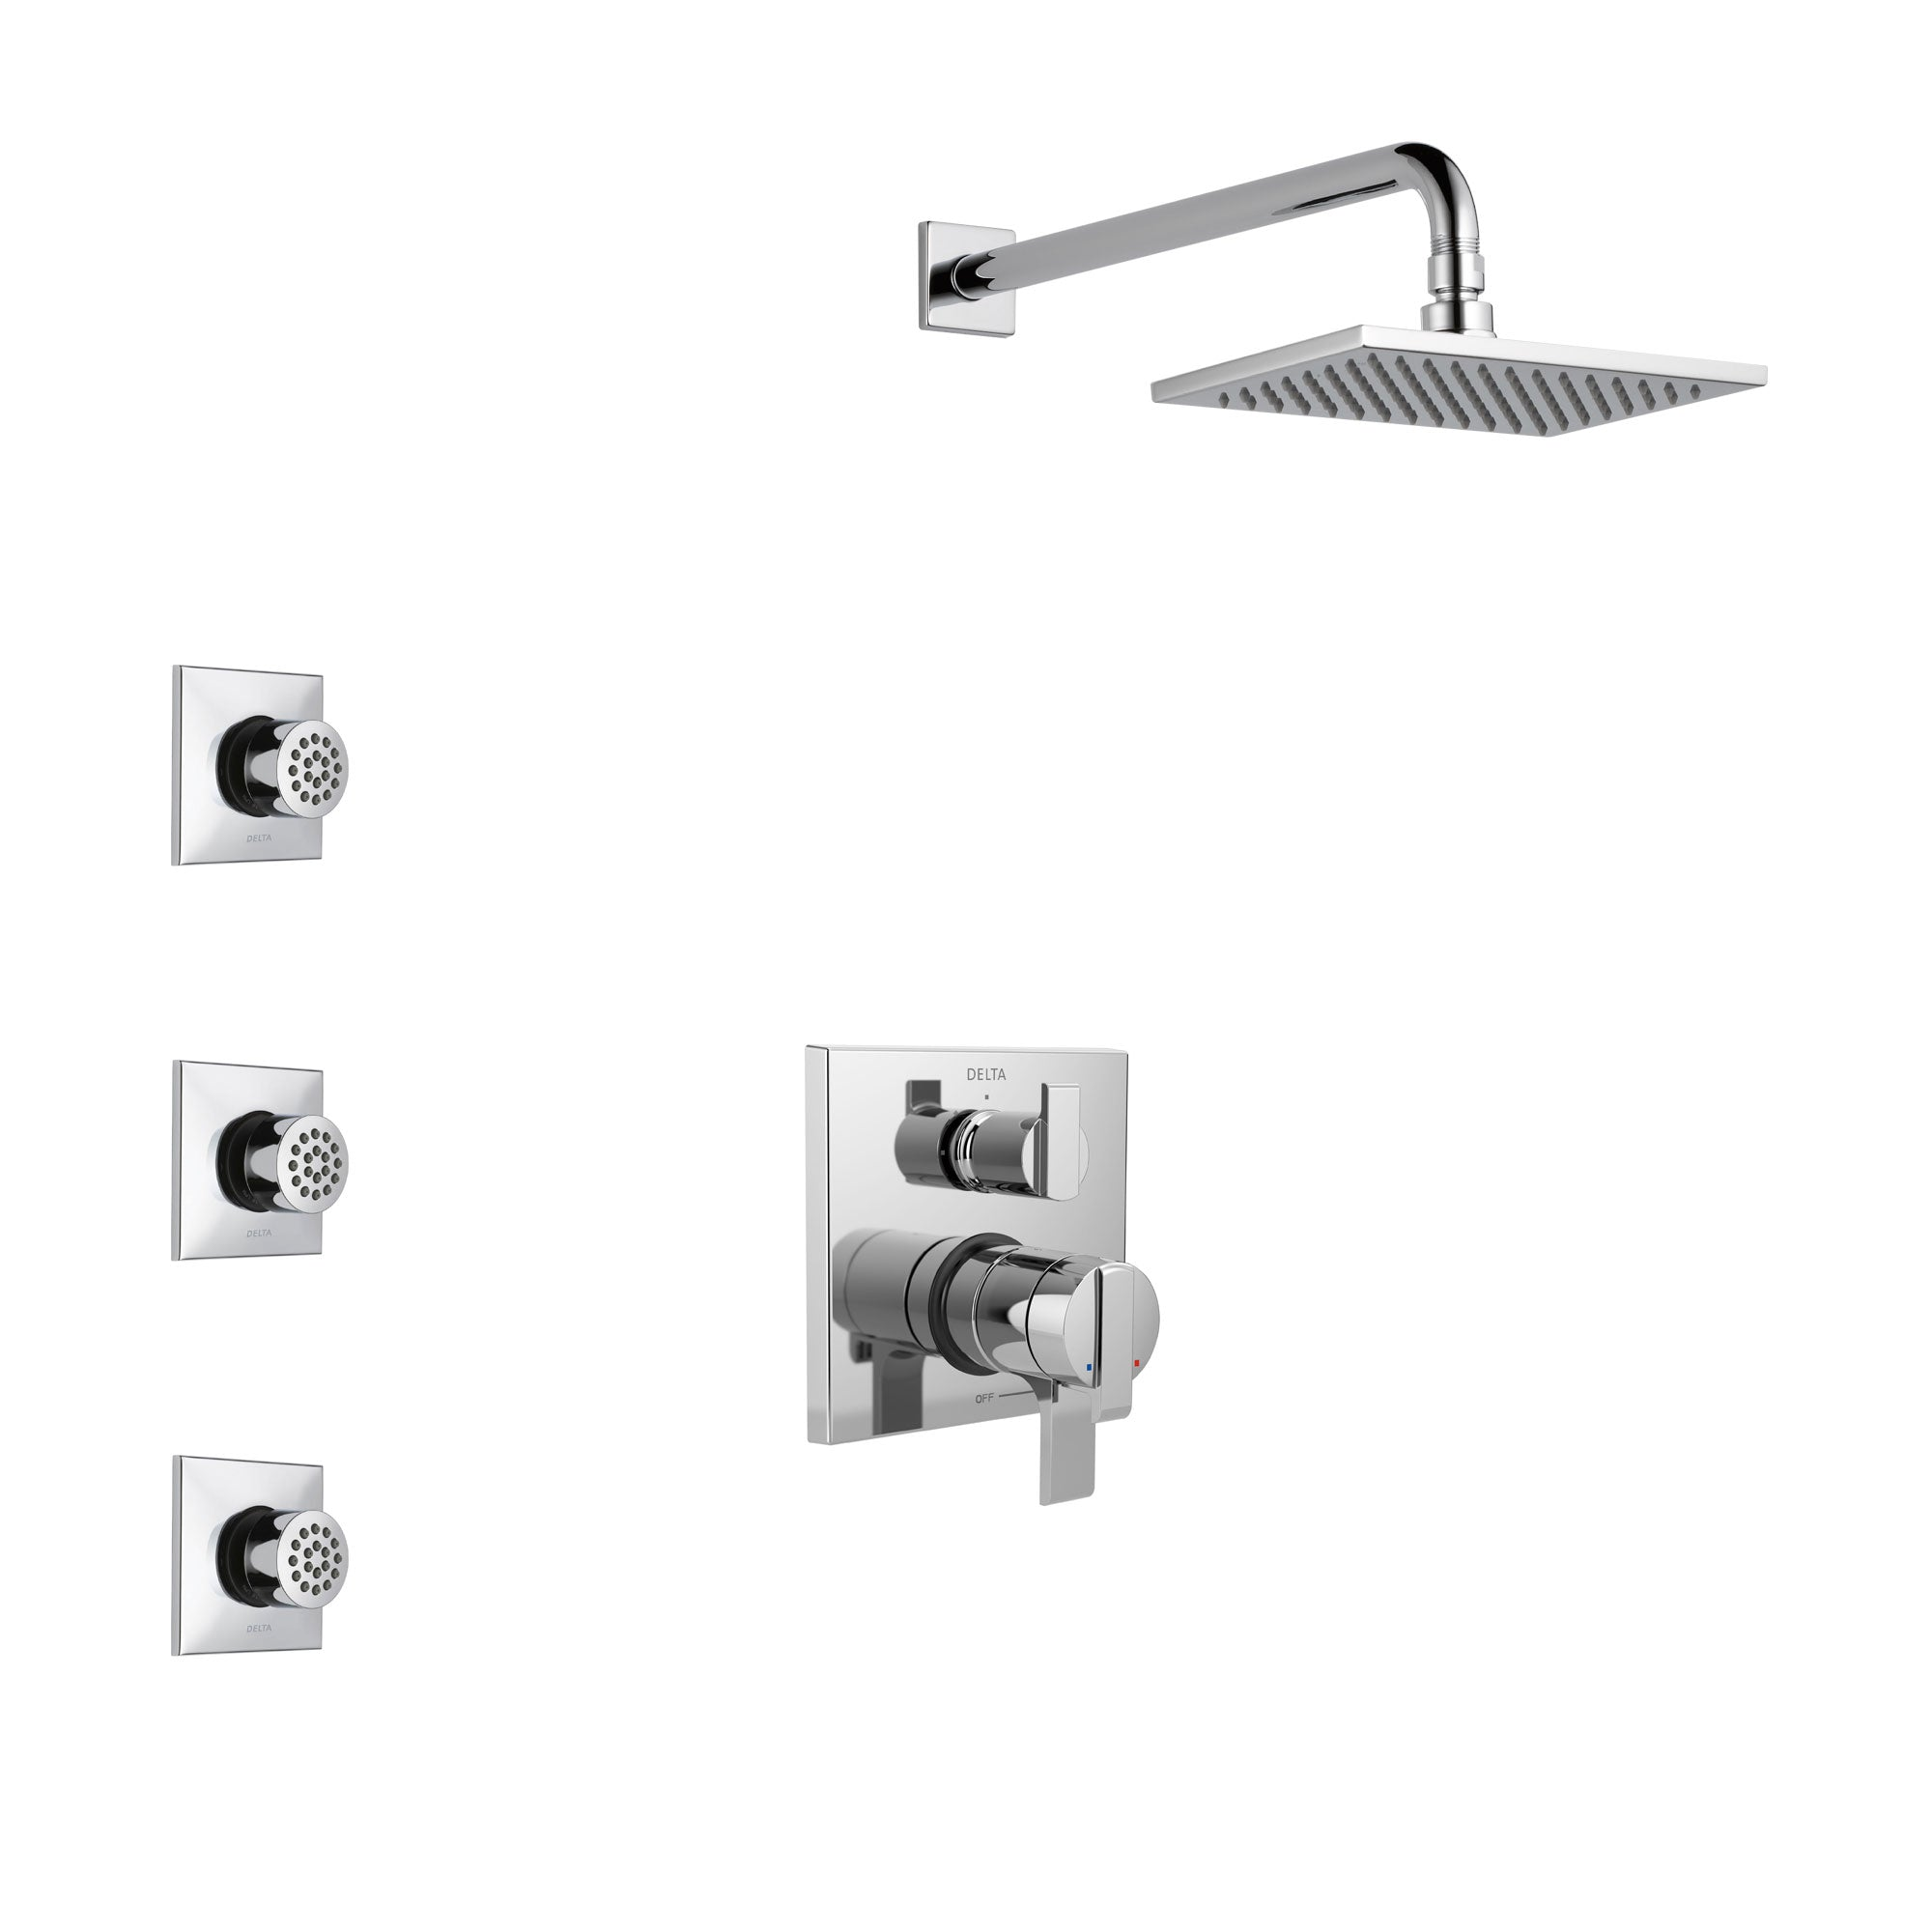 Delta Ara Chrome Finish Shower System with Dual Control Handle, Integrated 3-Setting Diverter, Showerhead, and 3 Body Sprays SS2786711